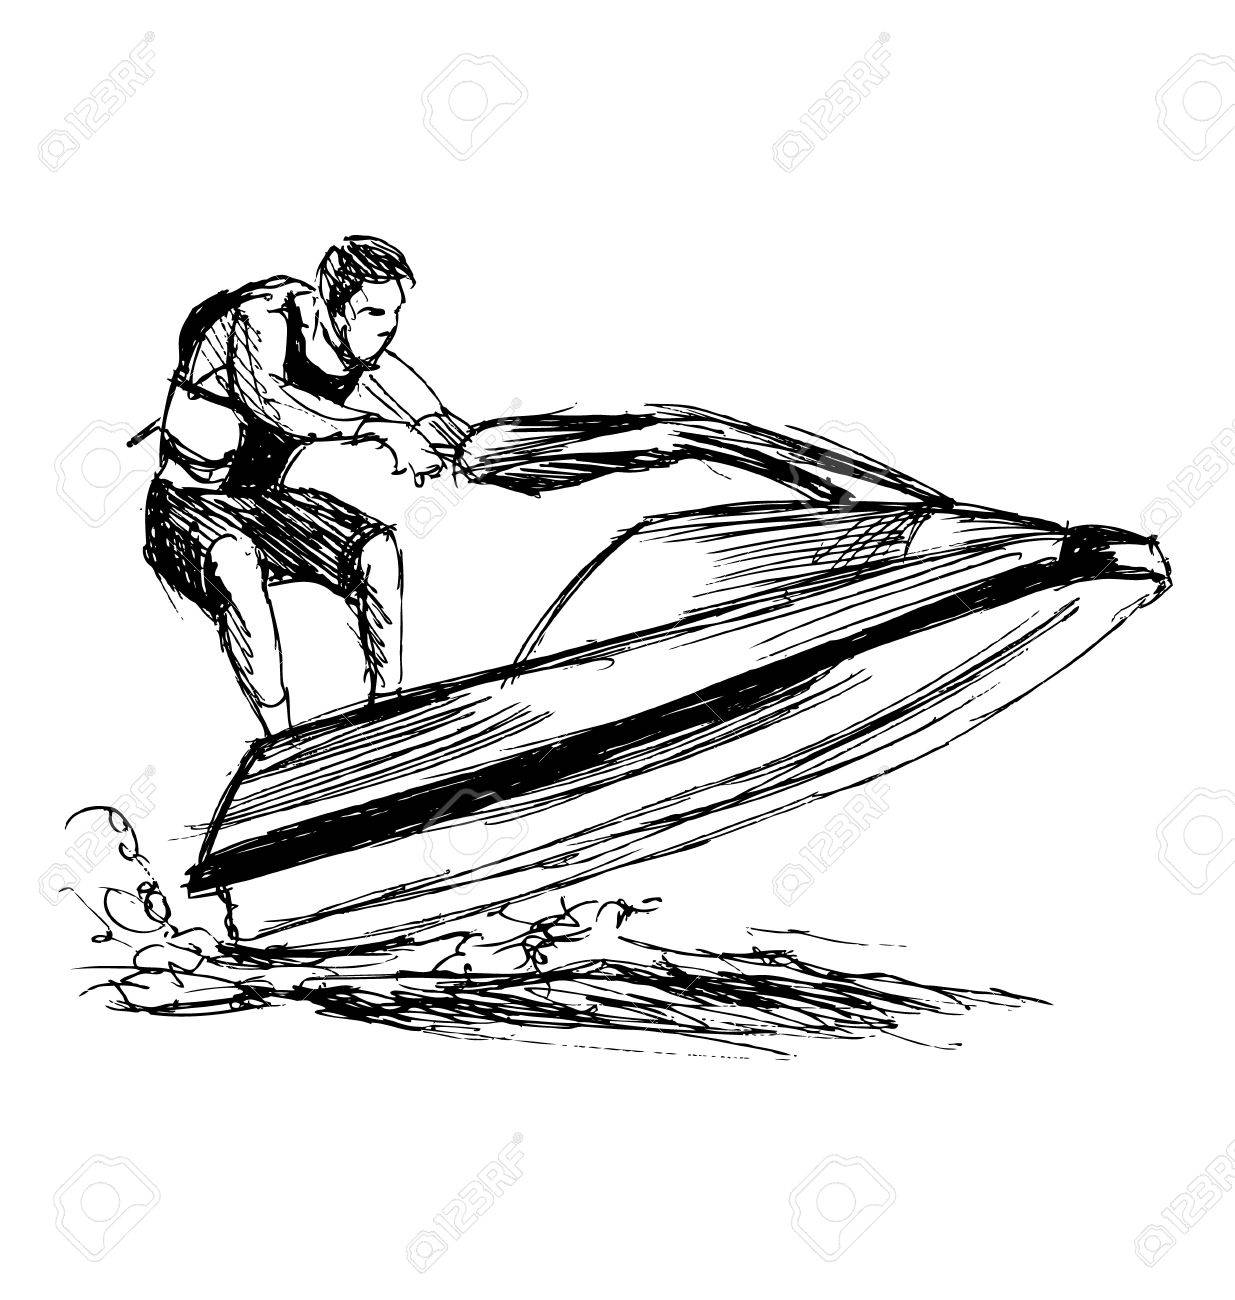 1235x1300 Hand Sketch Rider On A Jet Ski Royalty Free Cliparts, Vectors,